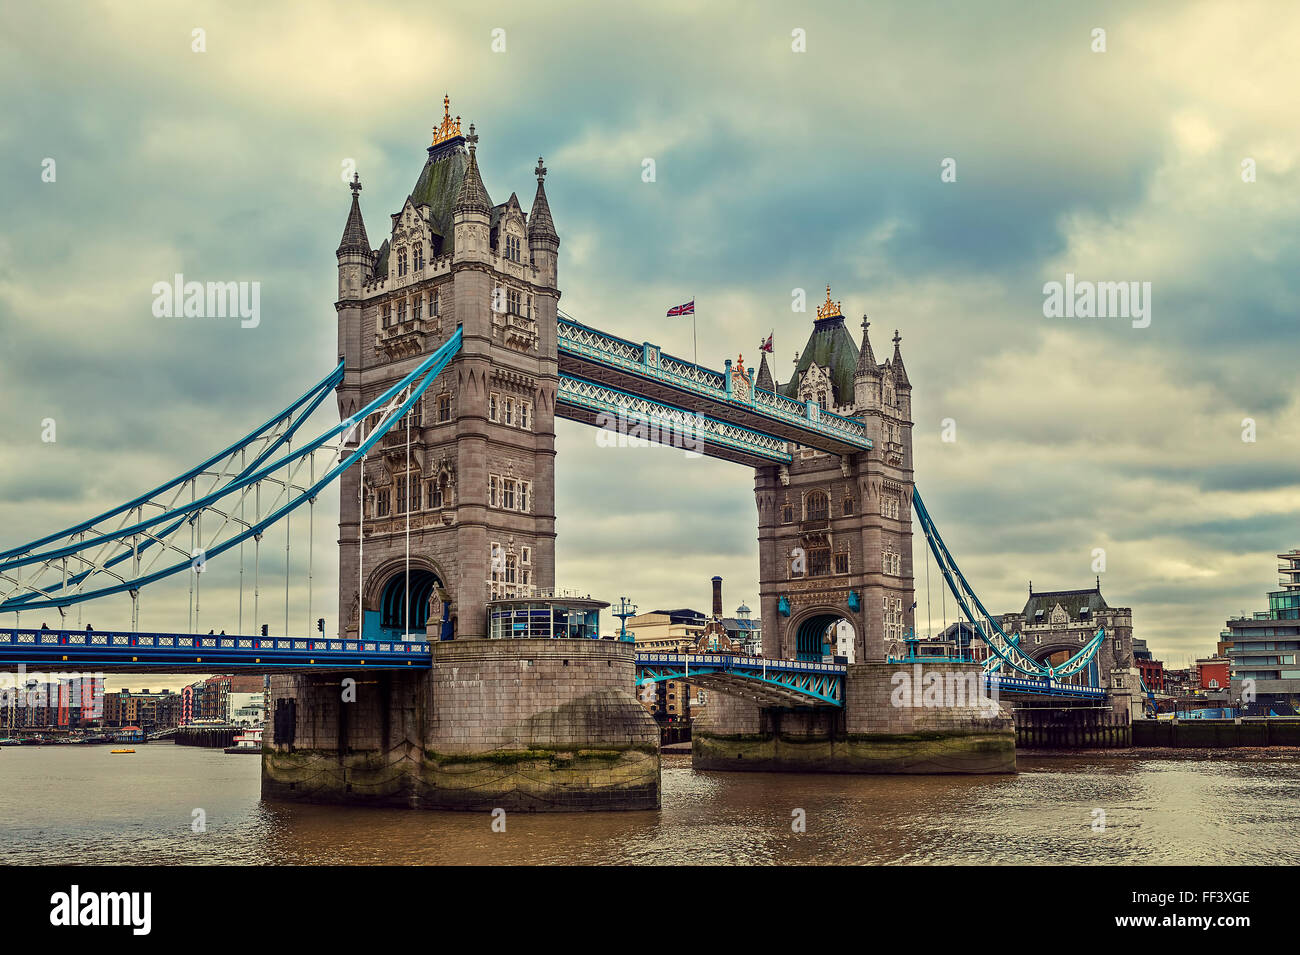 View of Tower Bridge under cloudy sky in London, UK. - Stock Image